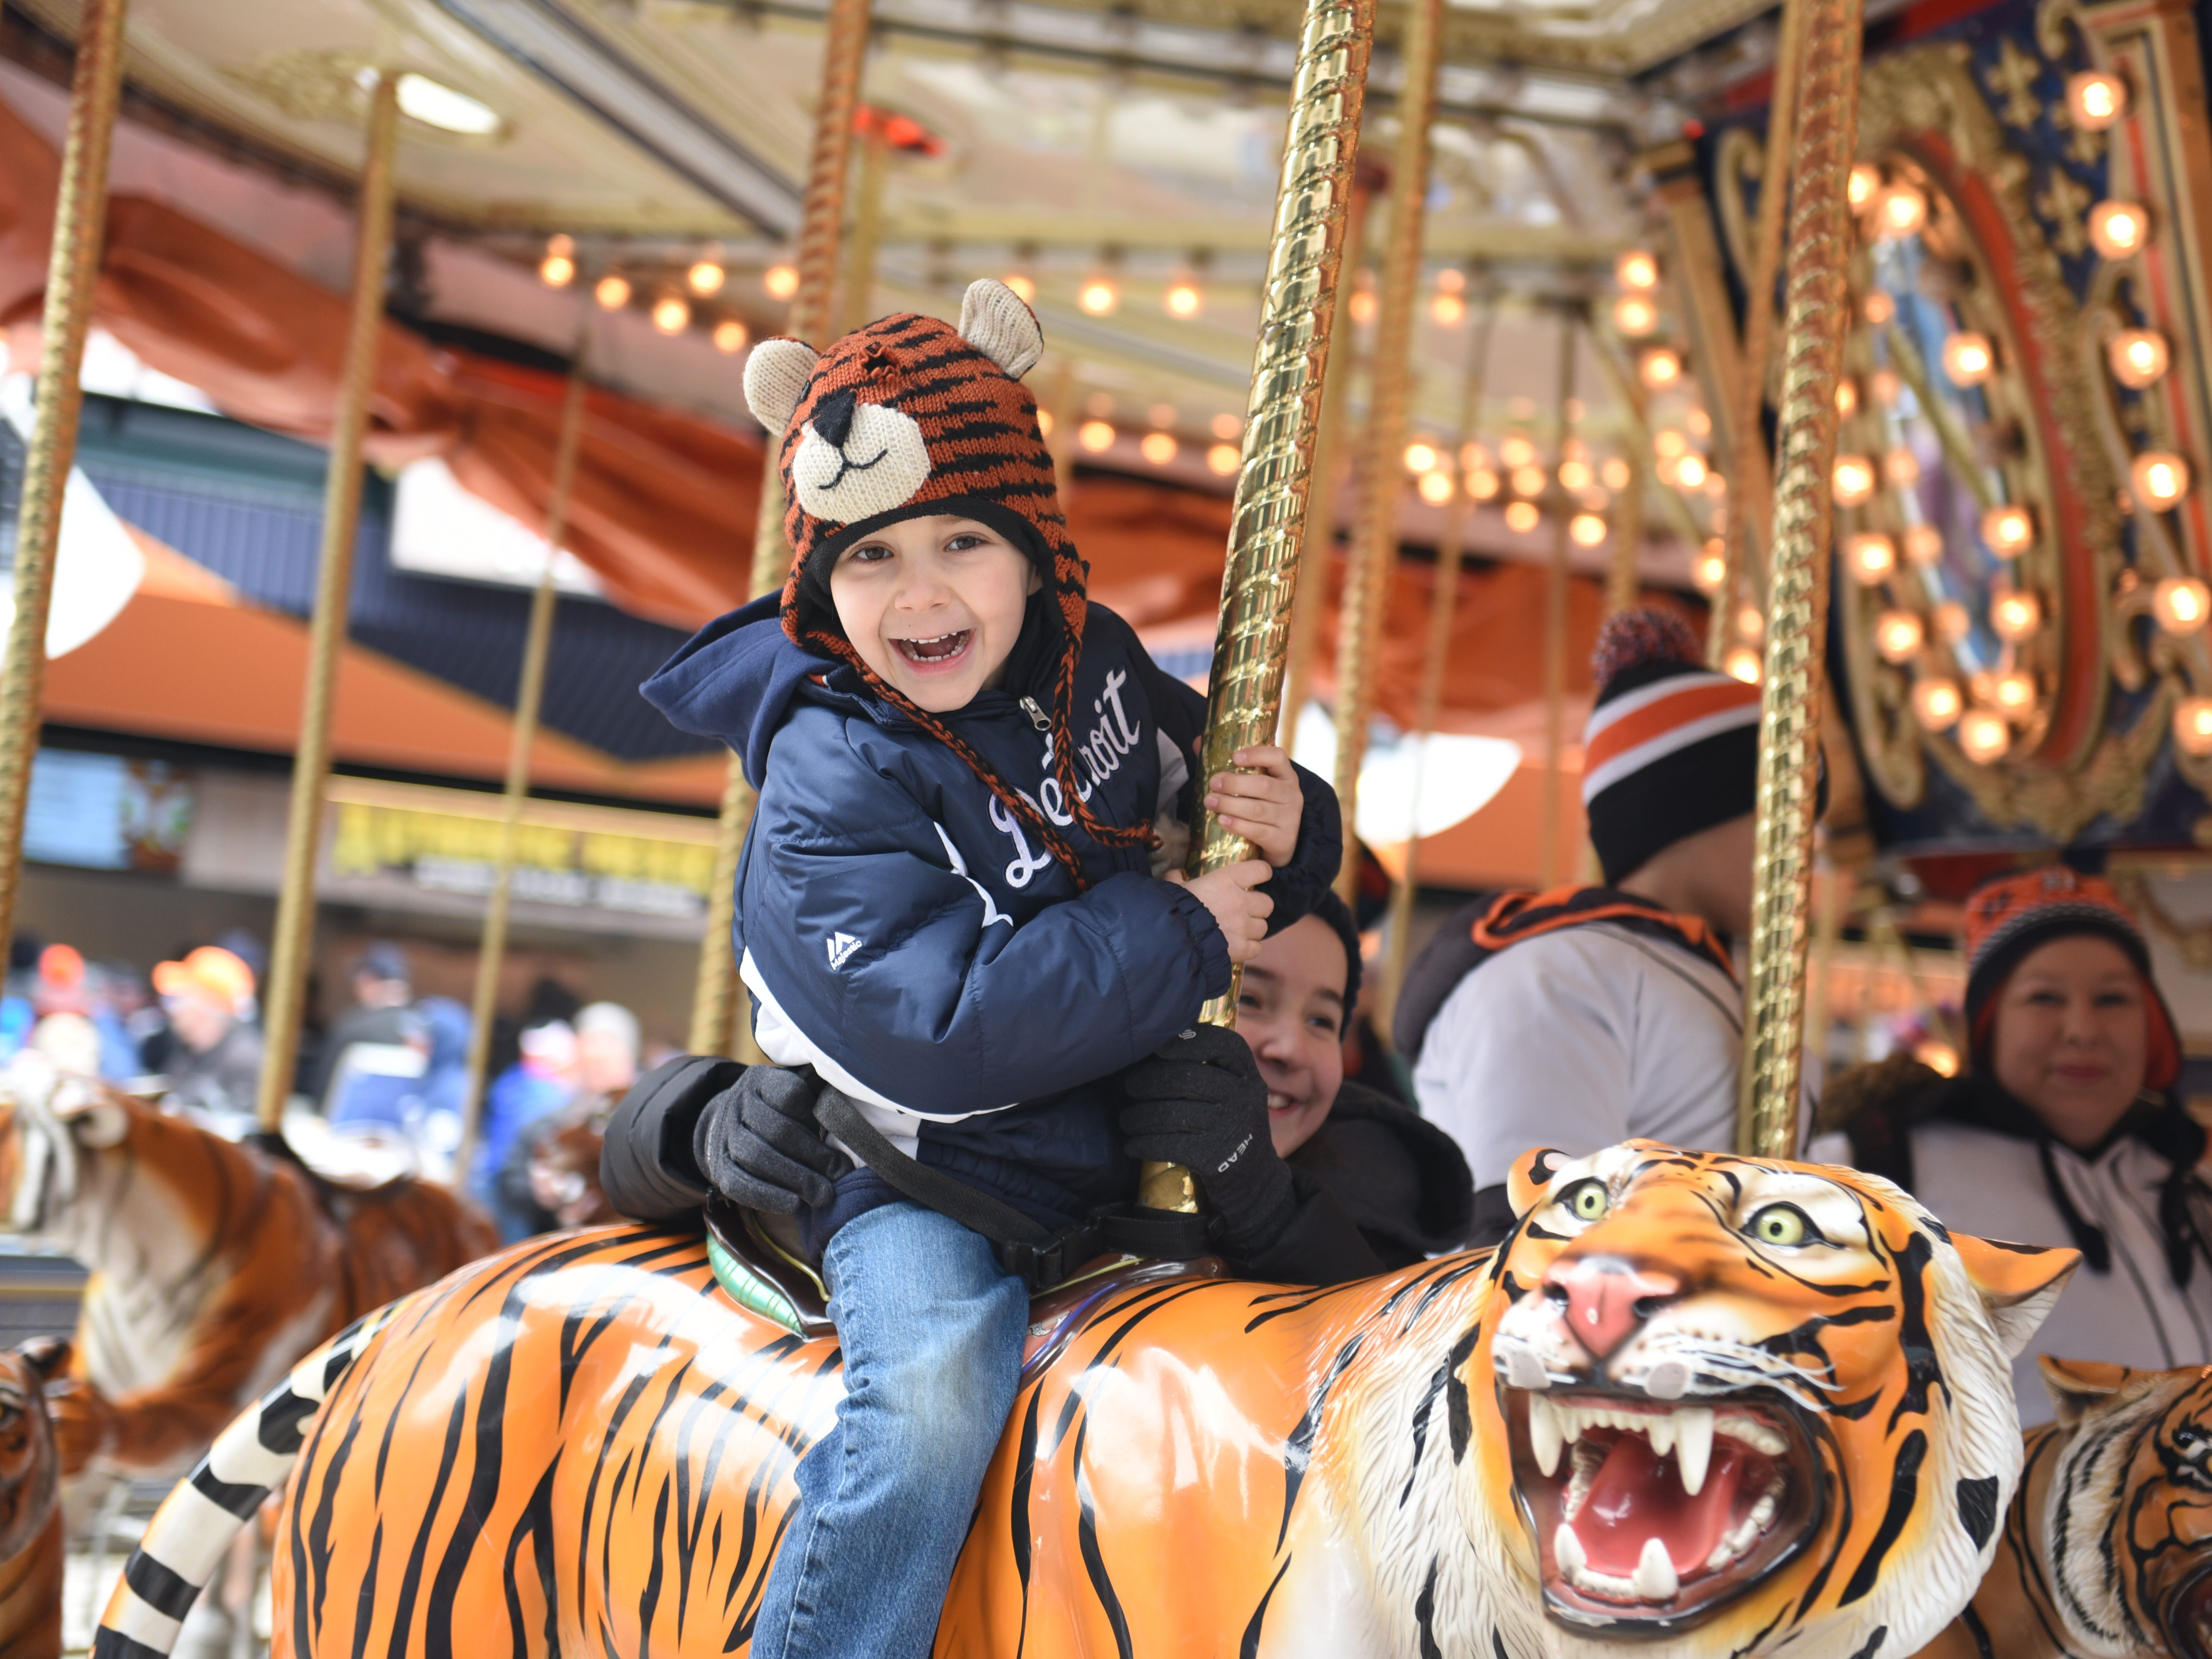 Luke Merdinian of Brighton smiles as he his held by his sister Kate on Opening Day at Comerica Park on March 30, 2018.